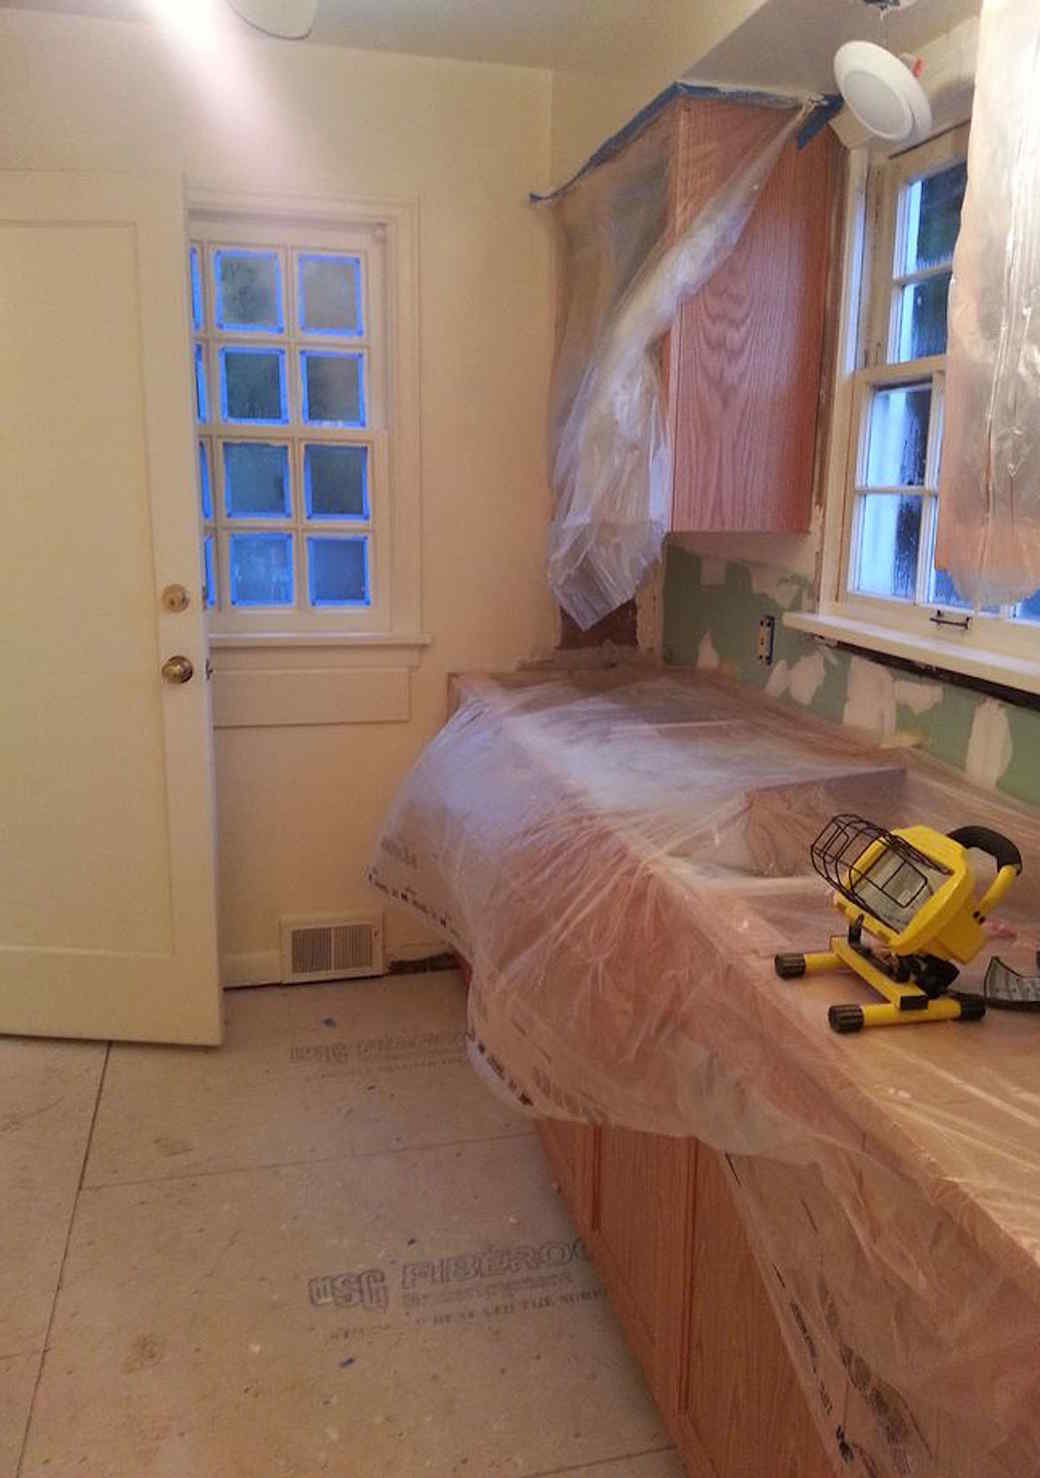 Renovating a Home? Here's How to Survive Without Your Kitchen